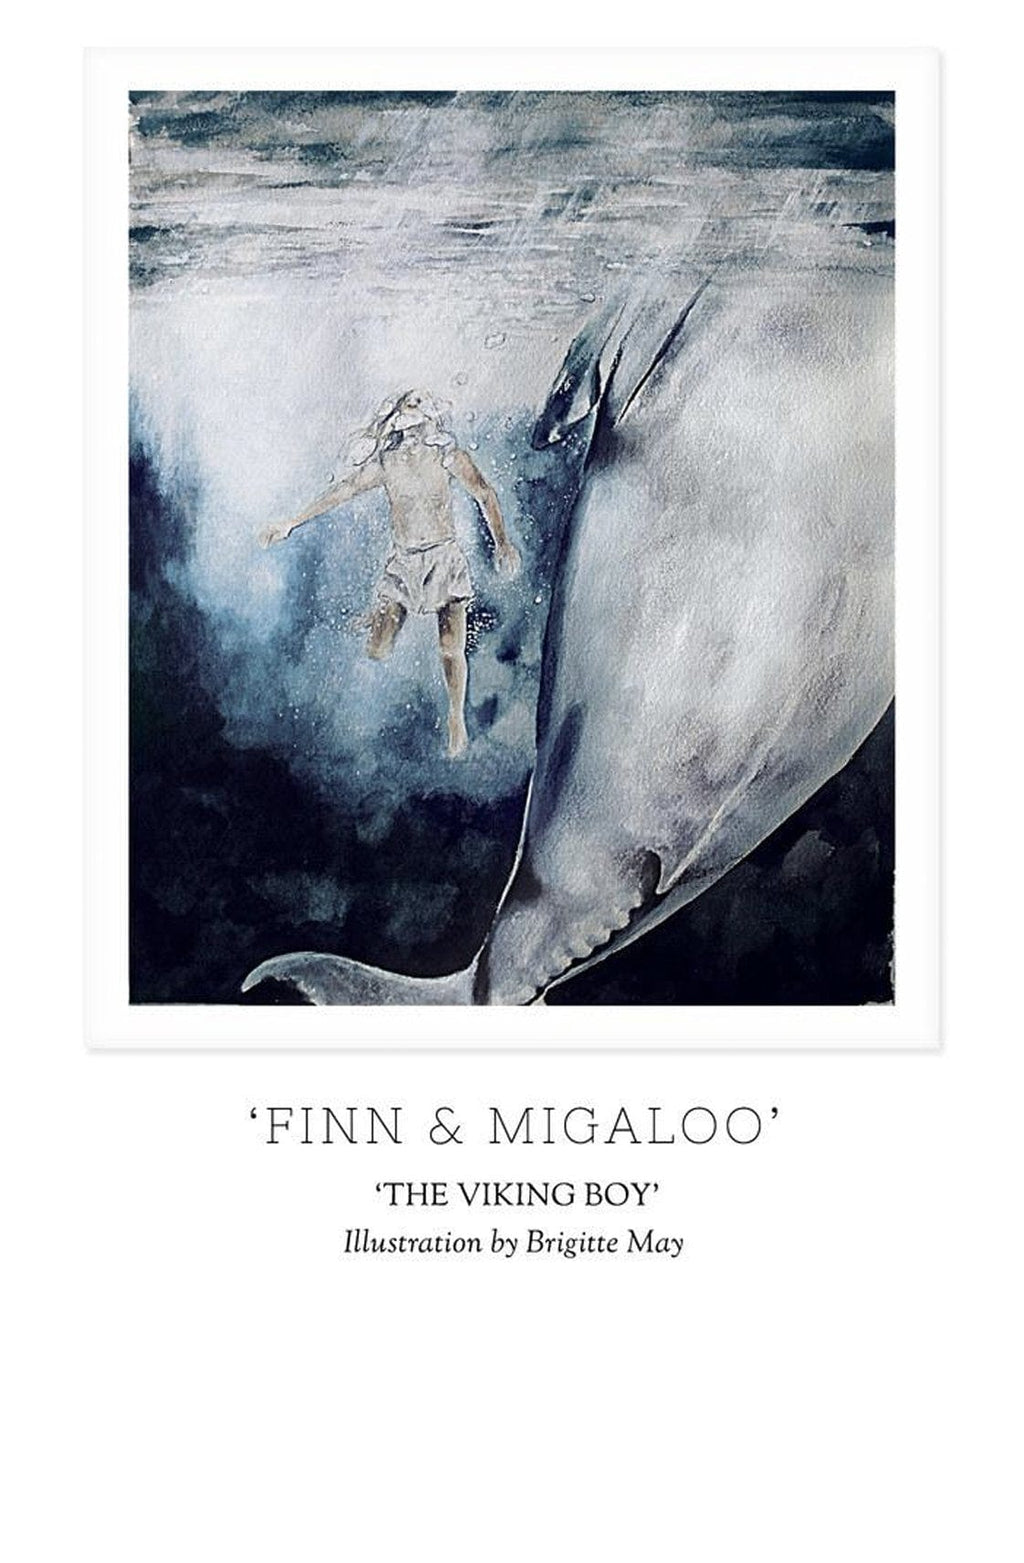 THE VIKING BOY - 'FINN & MIGALOO' Print